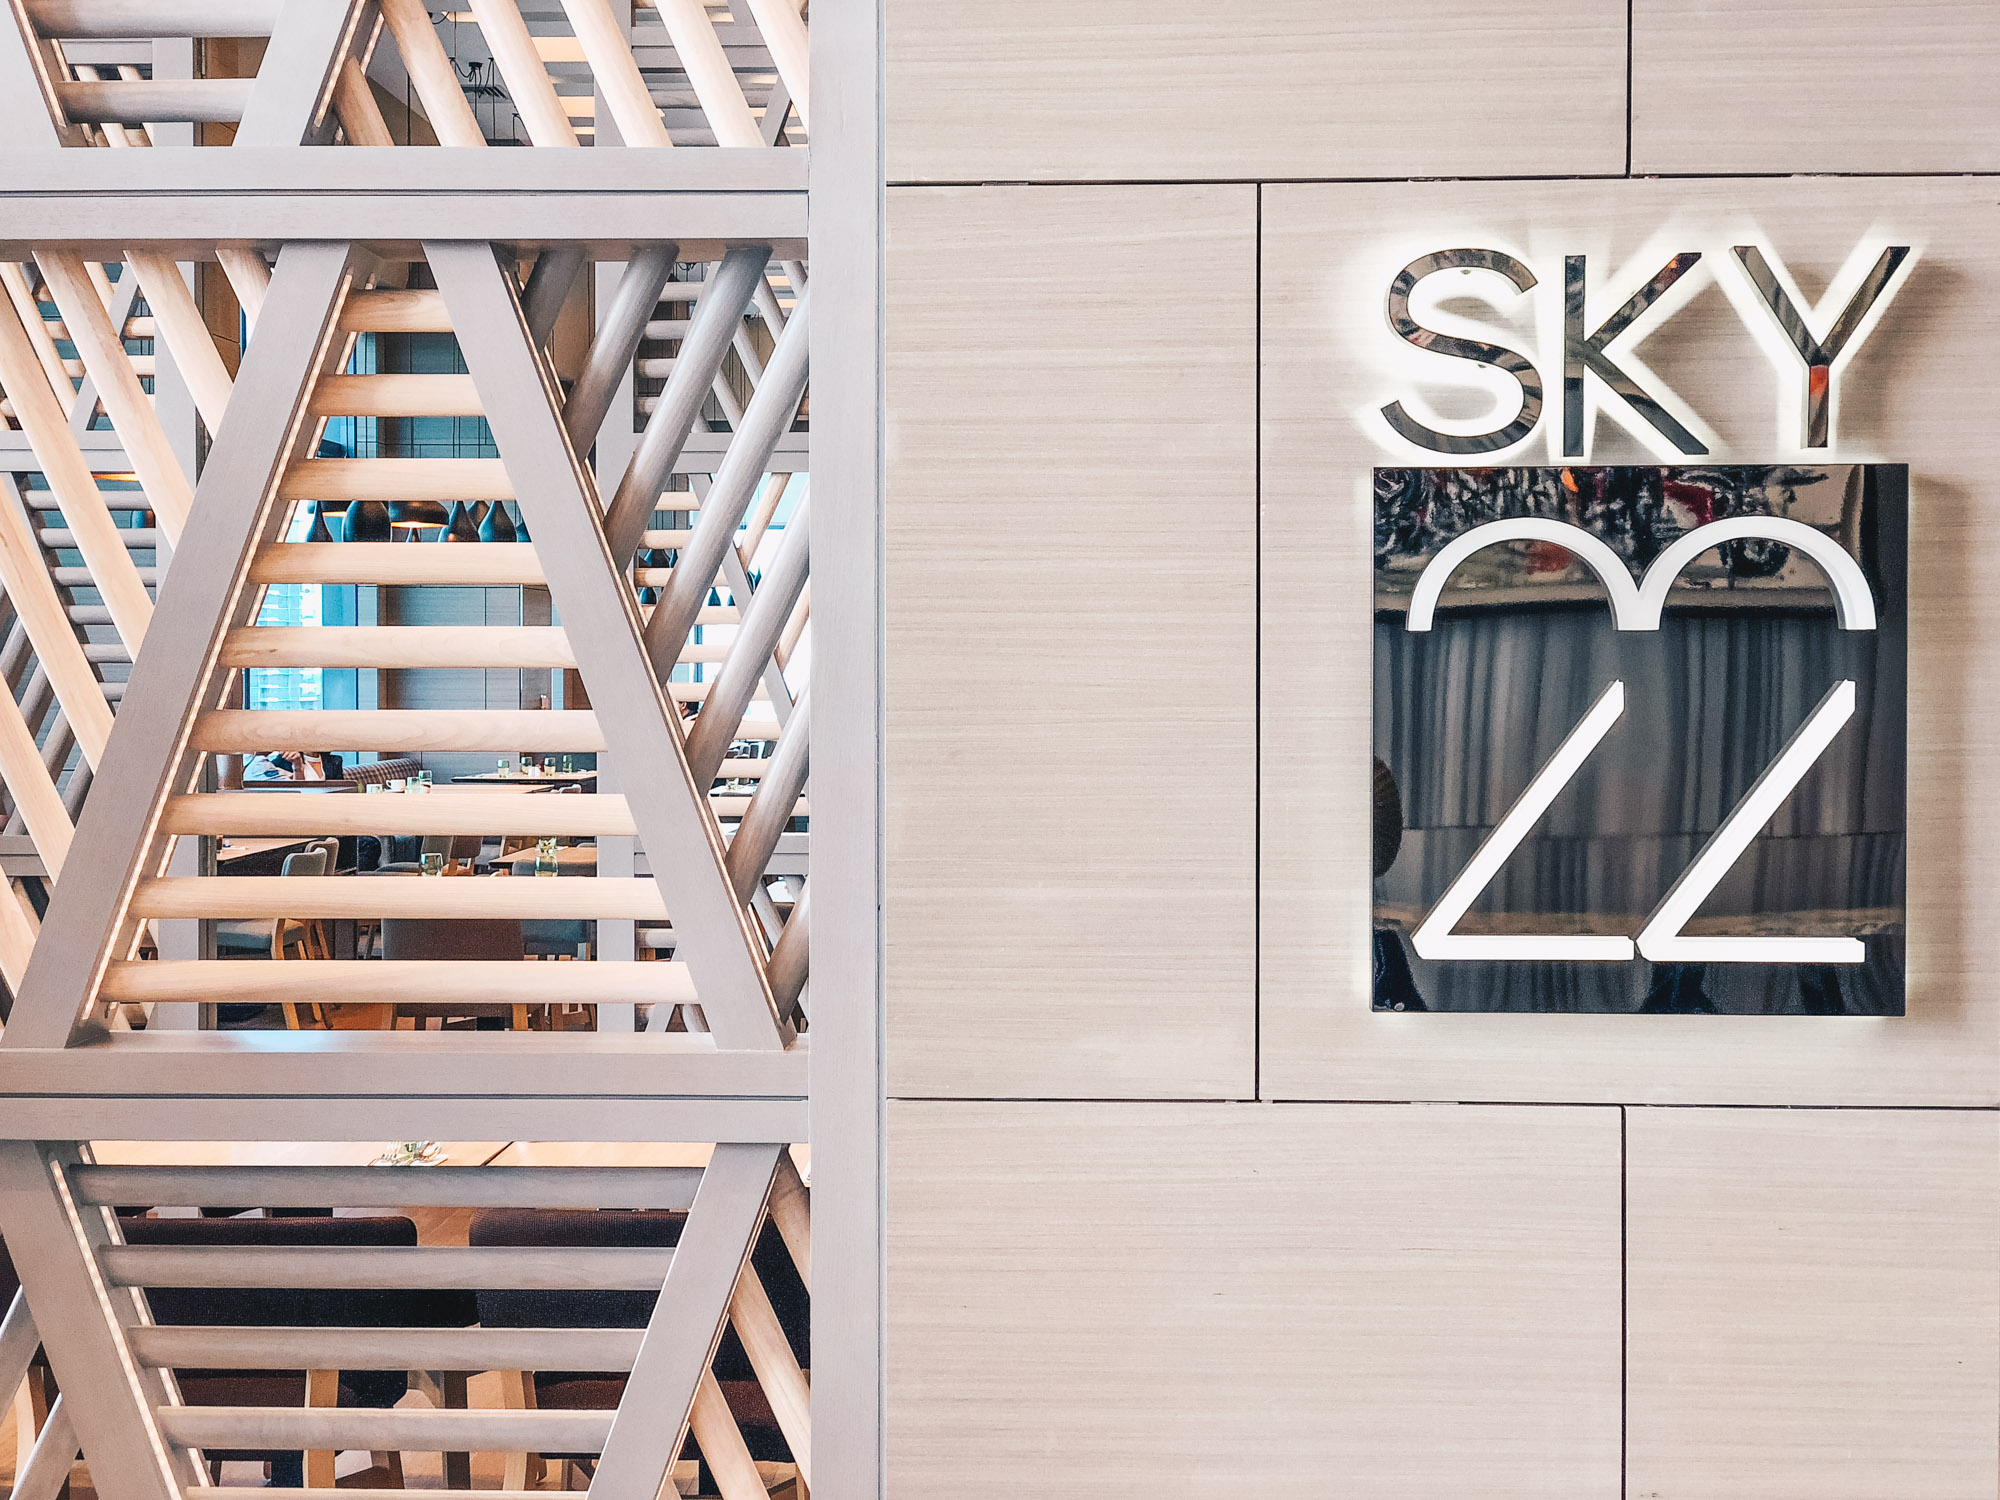 Sky22 at Courtyard by Marriott - Dining with a Skyline View